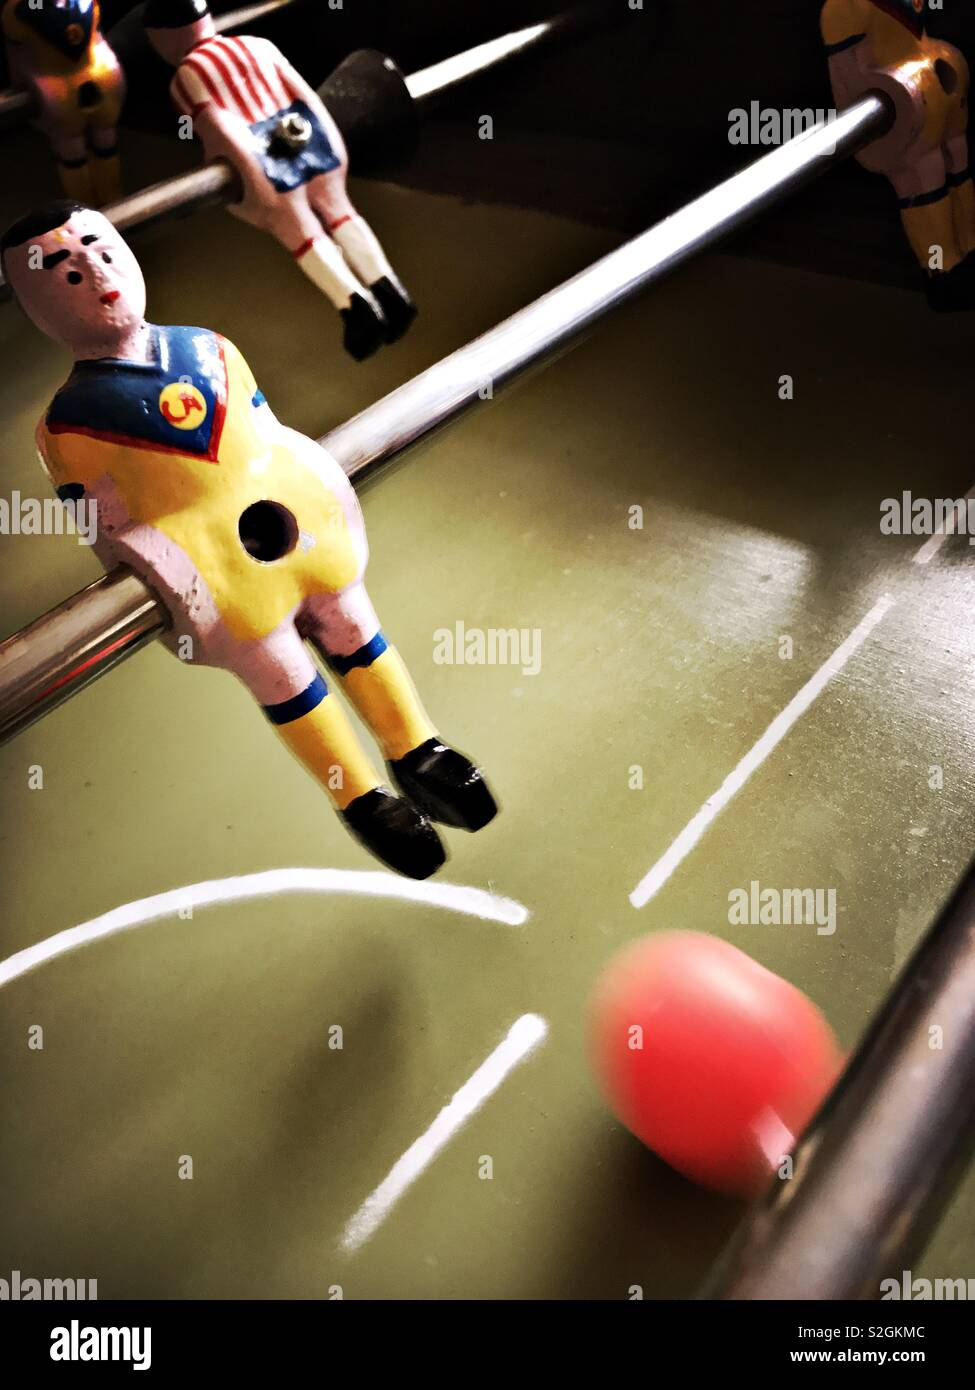 A Club America futbolito figure kicks the ball down the tabletop field during a fast paced game against the rival Chivas team. - Stock Image